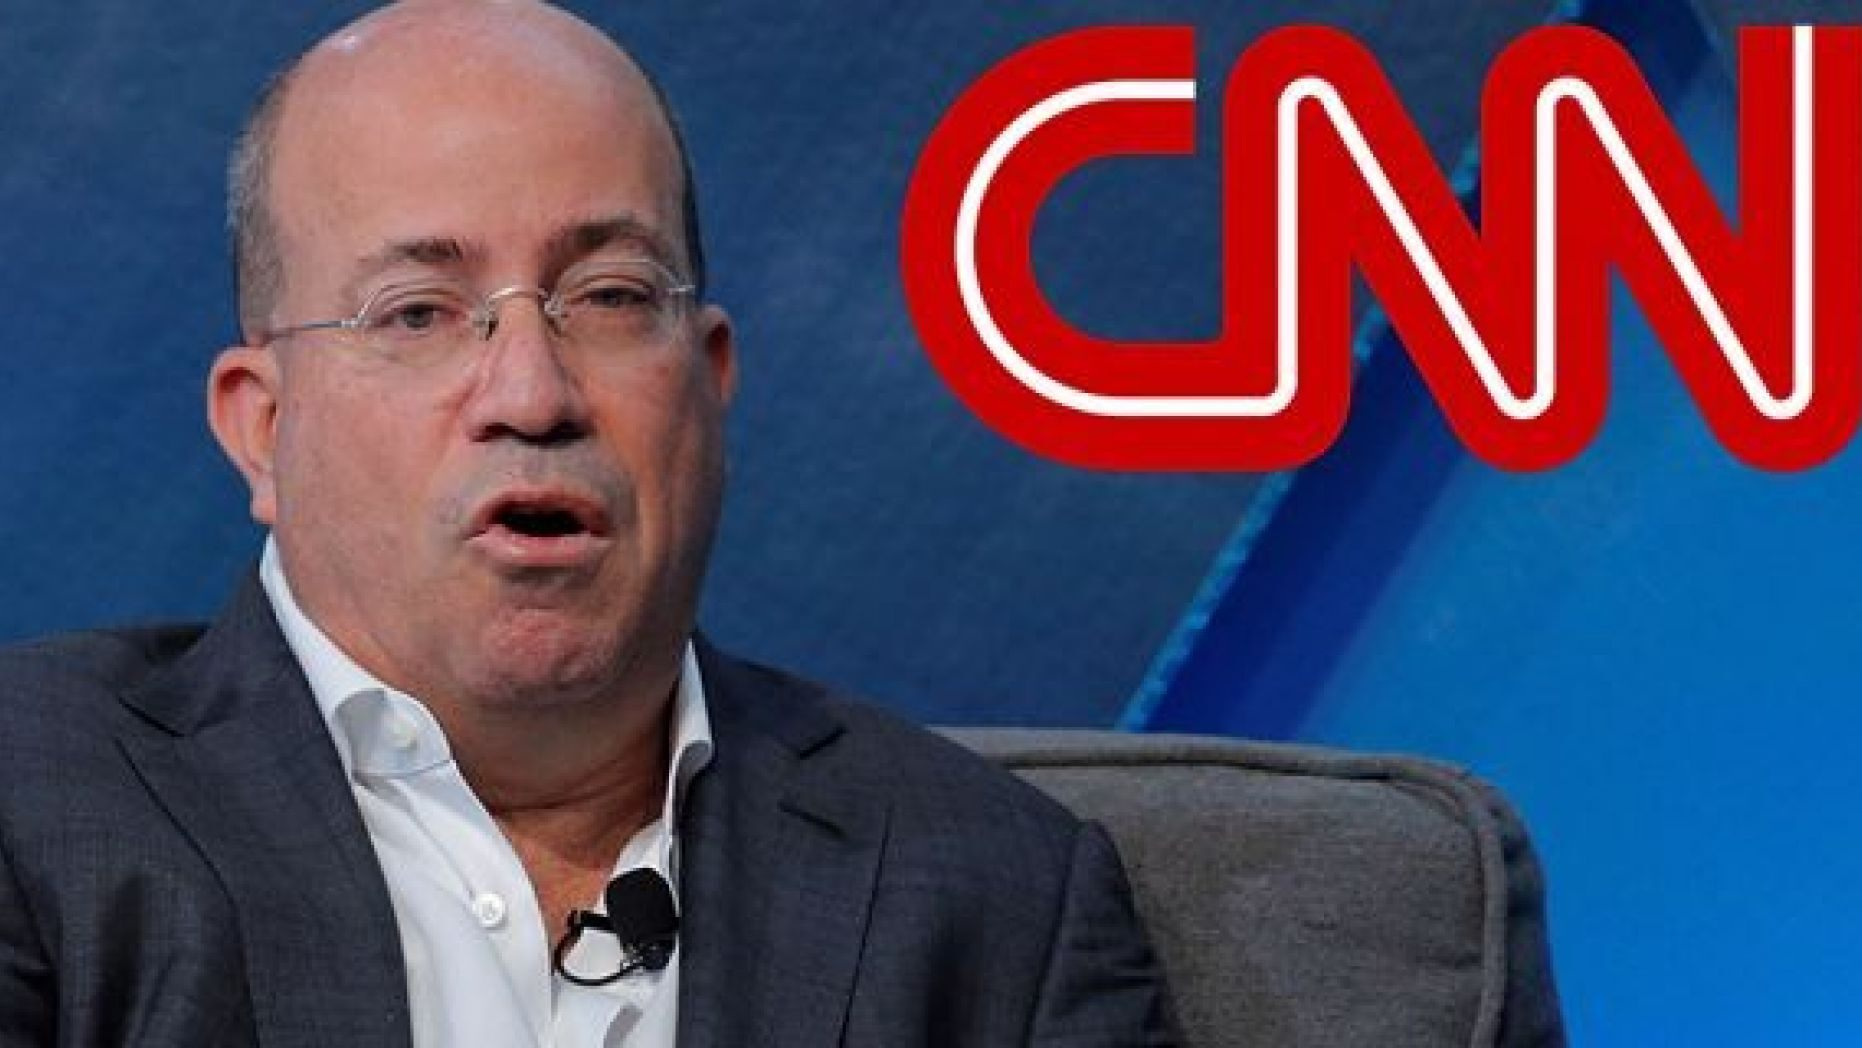 """CNN President Jeff Zucker made a sexualjoke about one of his female employees, """"New Day"""" anchor Alisyn Camerota,while accepting an award on Thursday.. (REUTERS/Lucas Jackson)"""